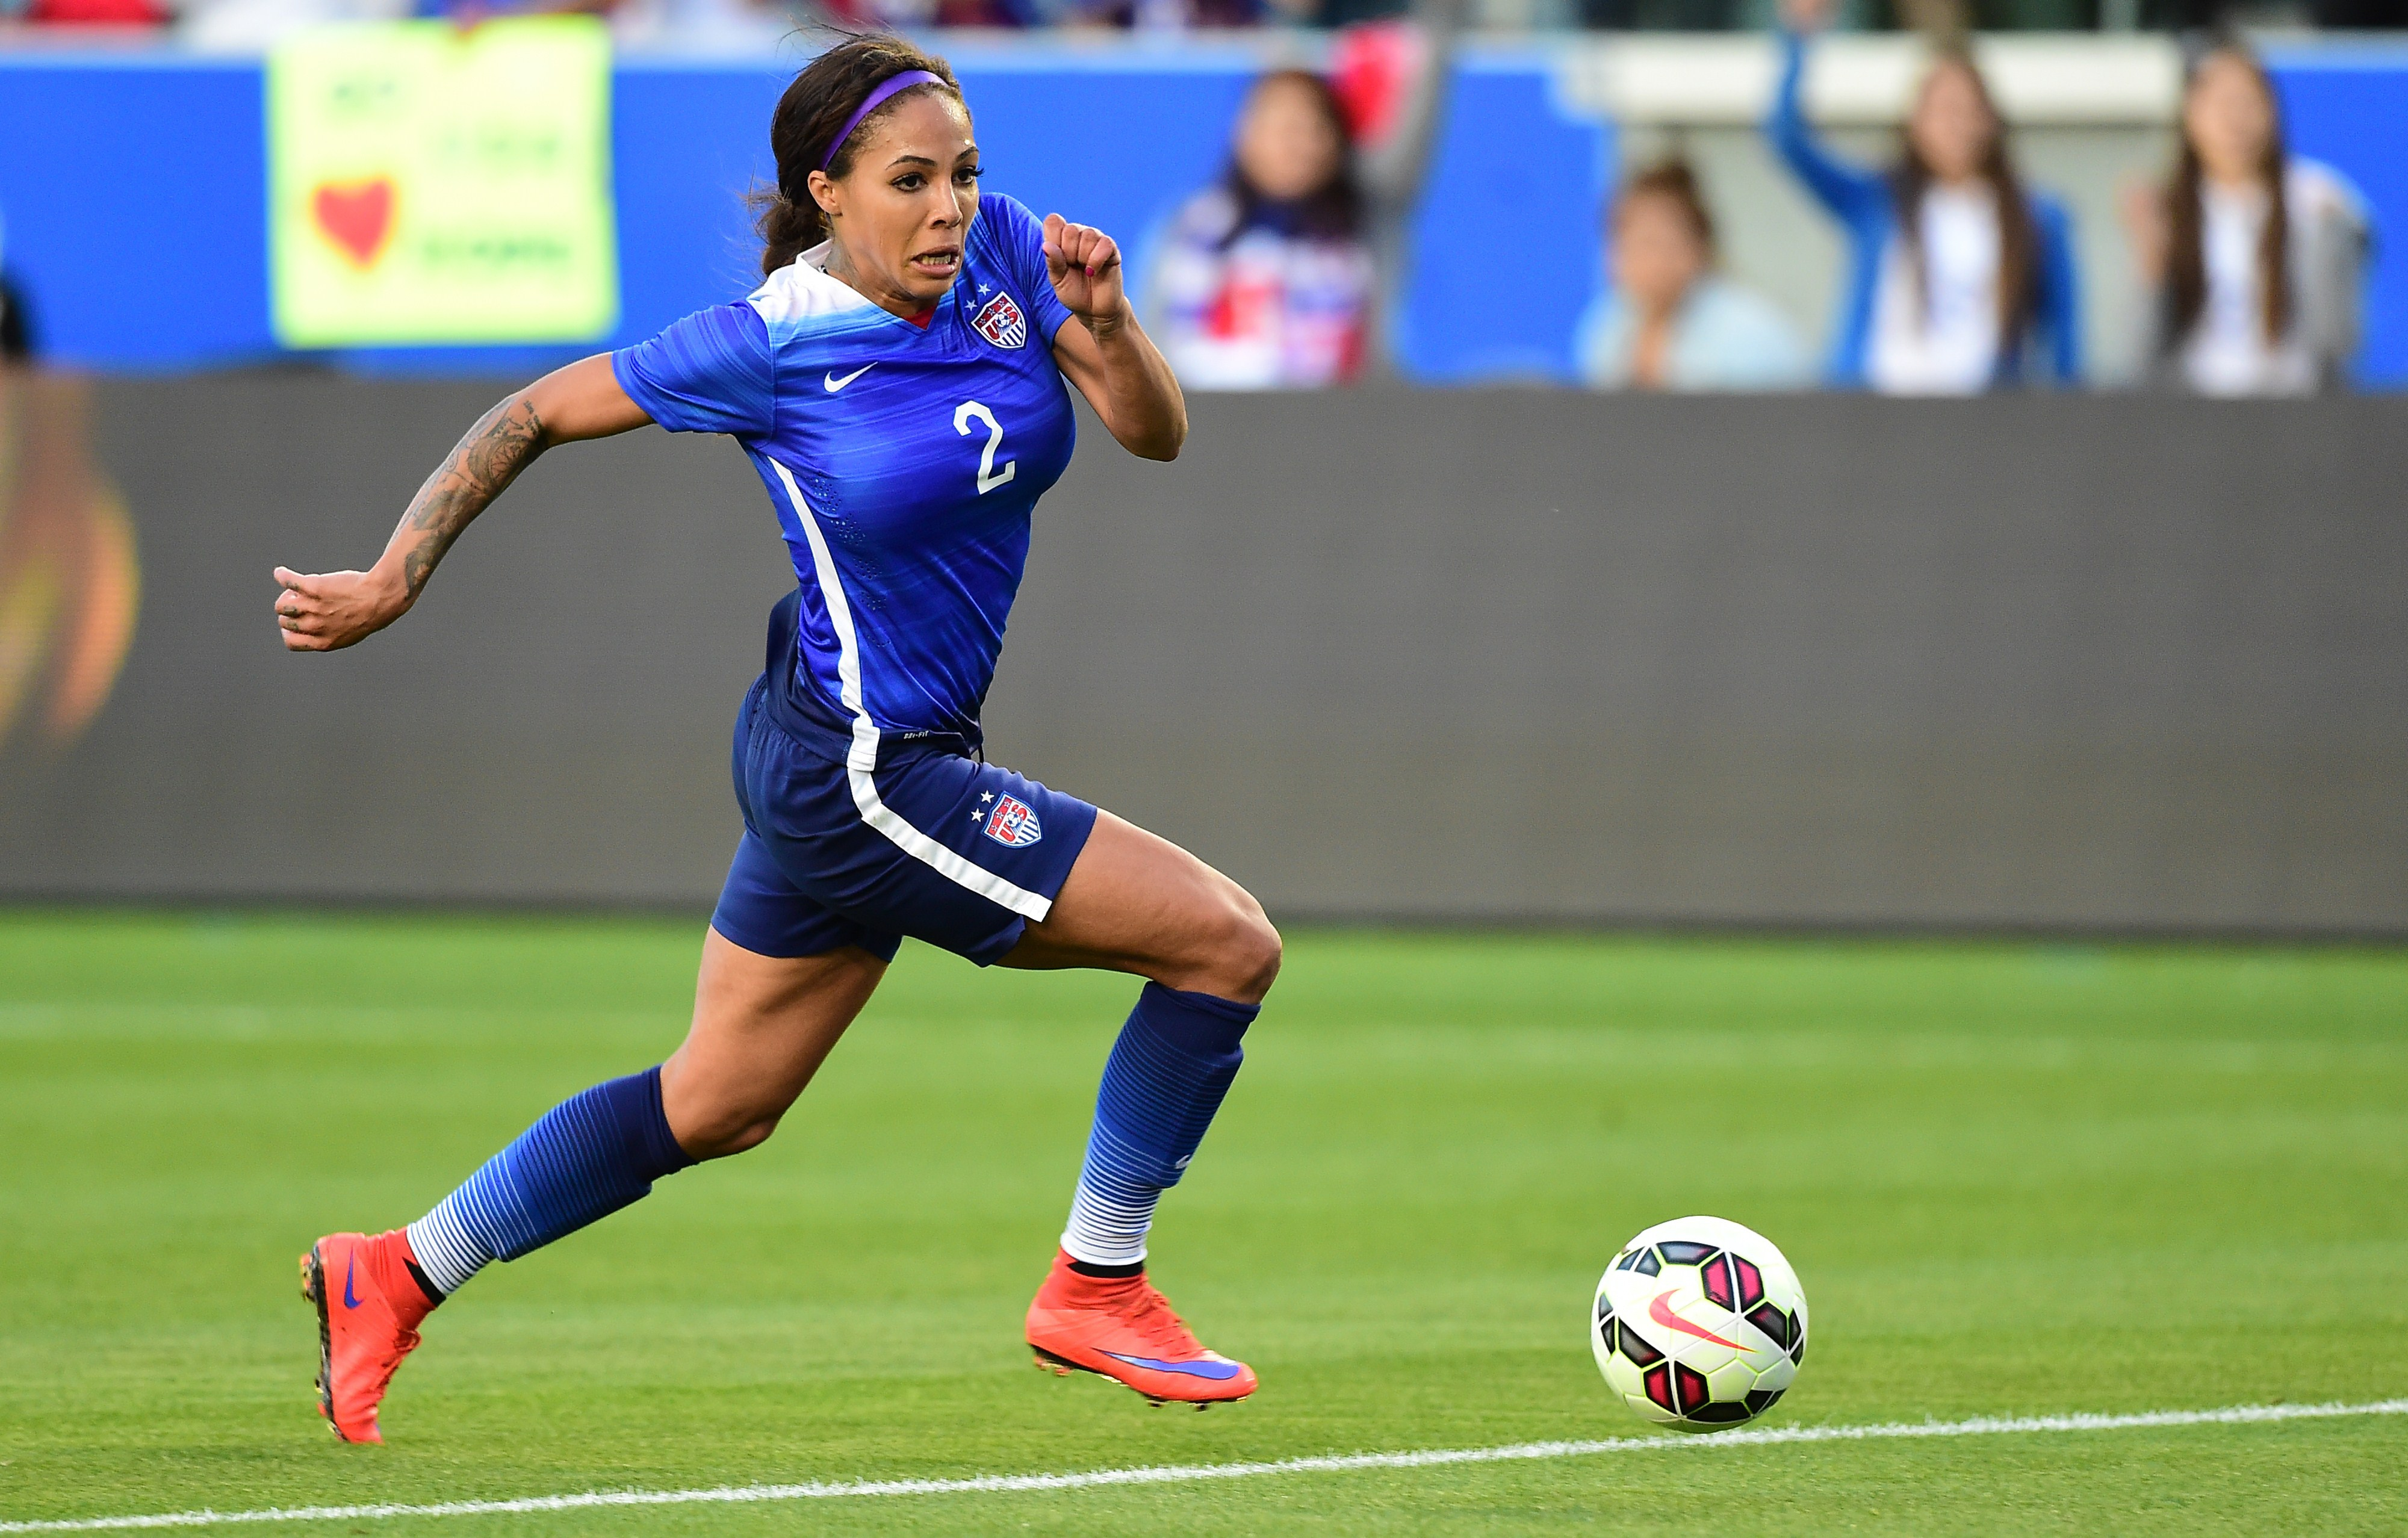 leroux Meet The 10 USWNT World Cup First Timers